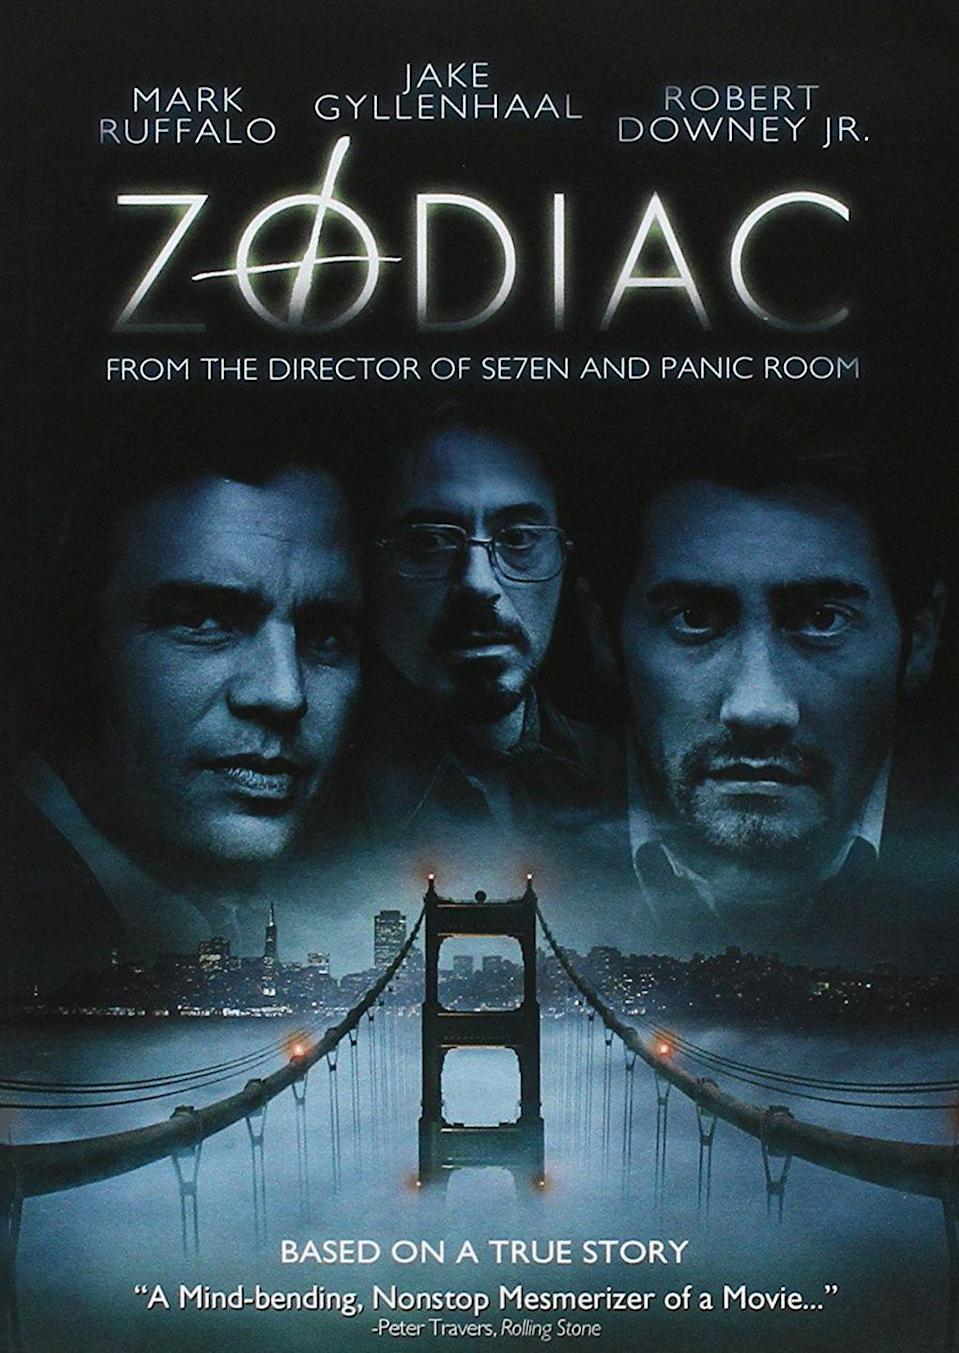 """<p><a class=""""link rapid-noclick-resp"""" href=""""https://www.amazon.com/Zodiac-Robert-Jr-Downey/dp/B06XGSXD9R/?tag=syn-yahoo-20&ascsubtag=%5Bartid%7C10063.g.35716832%5Bsrc%7Cyahoo-us"""" rel=""""nofollow noopener"""" target=""""_blank"""" data-ylk=""""slk:Watch Now"""">Watch Now</a> </p><p>Starring Mark Ruffalo, Anthony Edwards, Robert Downey Jr., and Jake Gyllenhaal, this twisty, disconcerting mystery-thriller follows the investigation into the identity of the infamous 1960s Zodiac killer in San Francisco. </p>"""